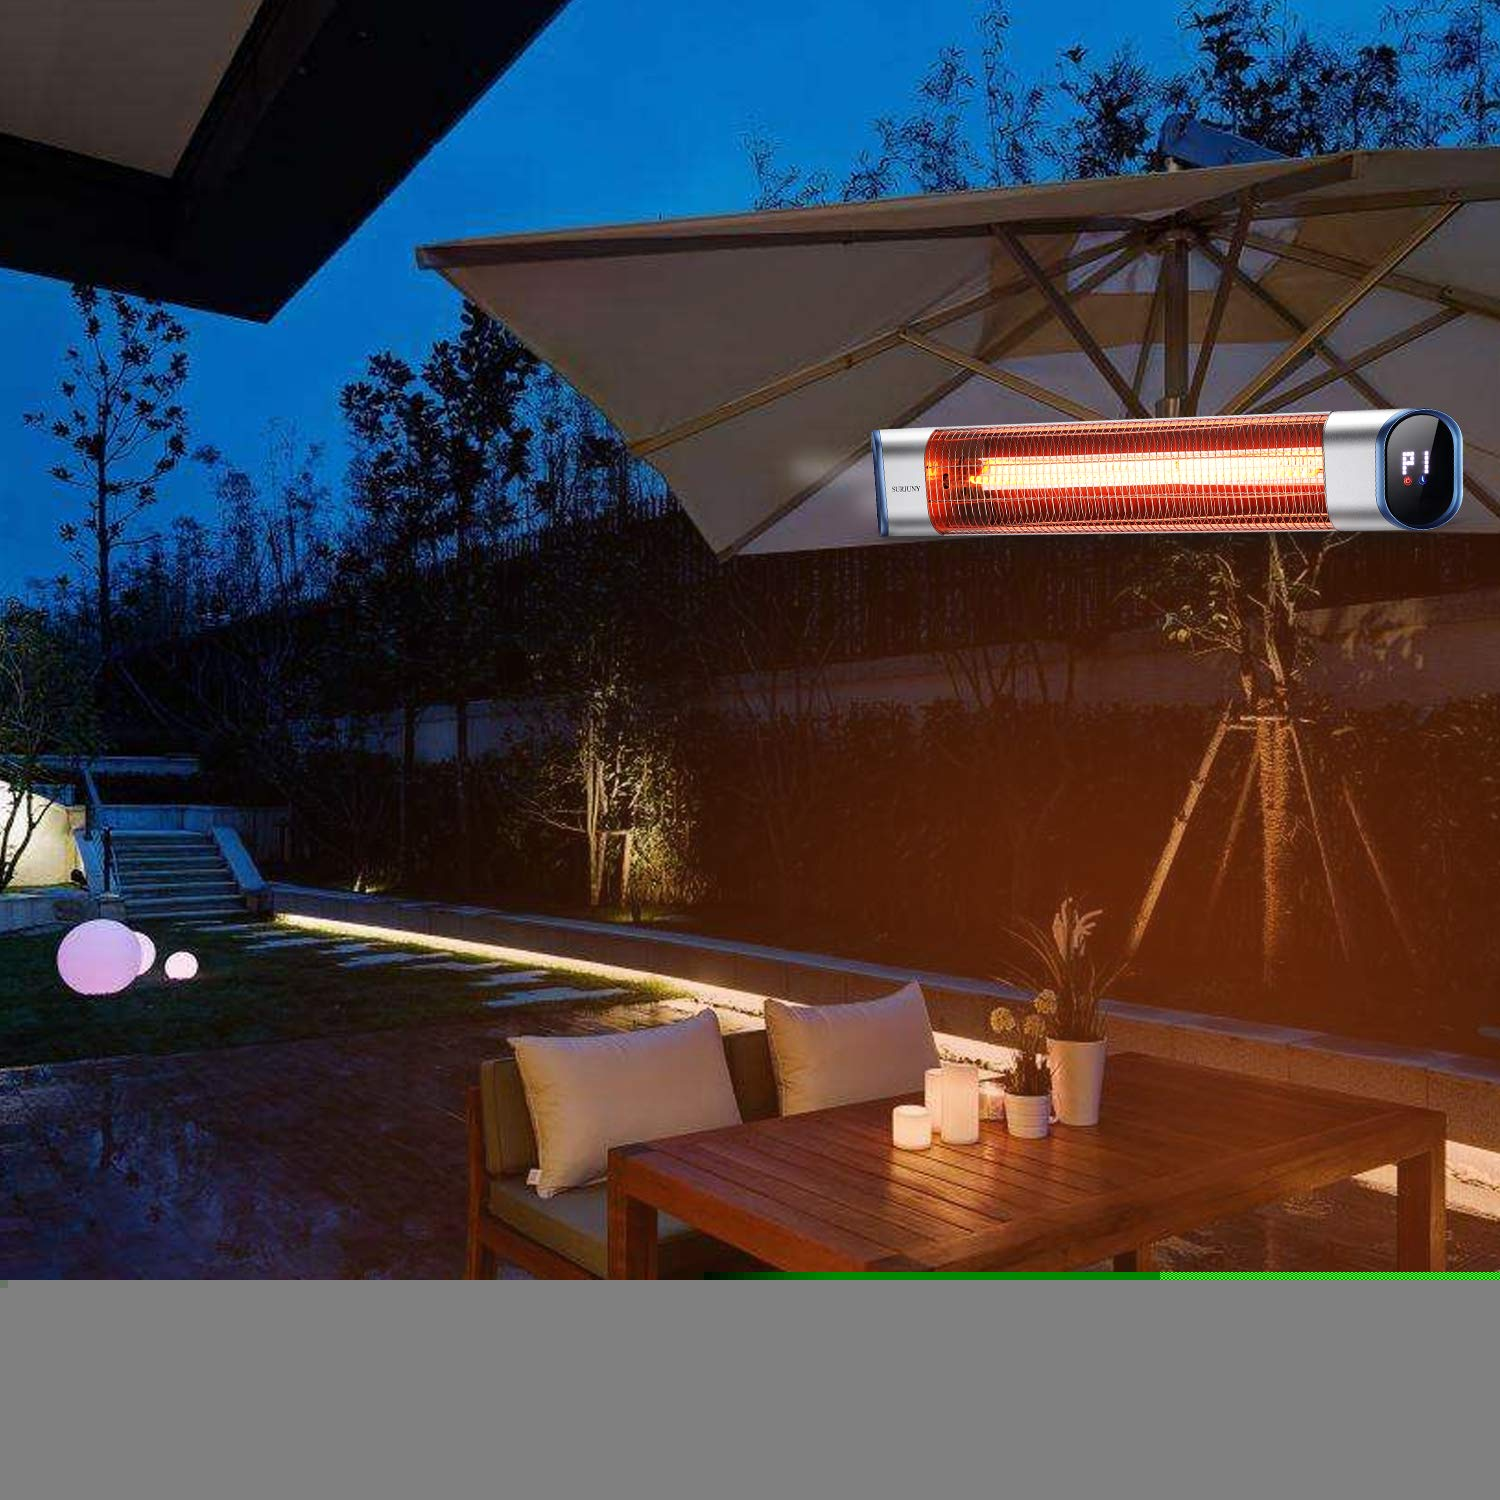 Backyard,1500W 24Hours Timer Auto Shut Off Garage Outdoor Wall-Mounted Infrared Patio Heater with LED Display and Remote Control SURJUNY Electric Outdoor Heater Space Heater for Bedroom